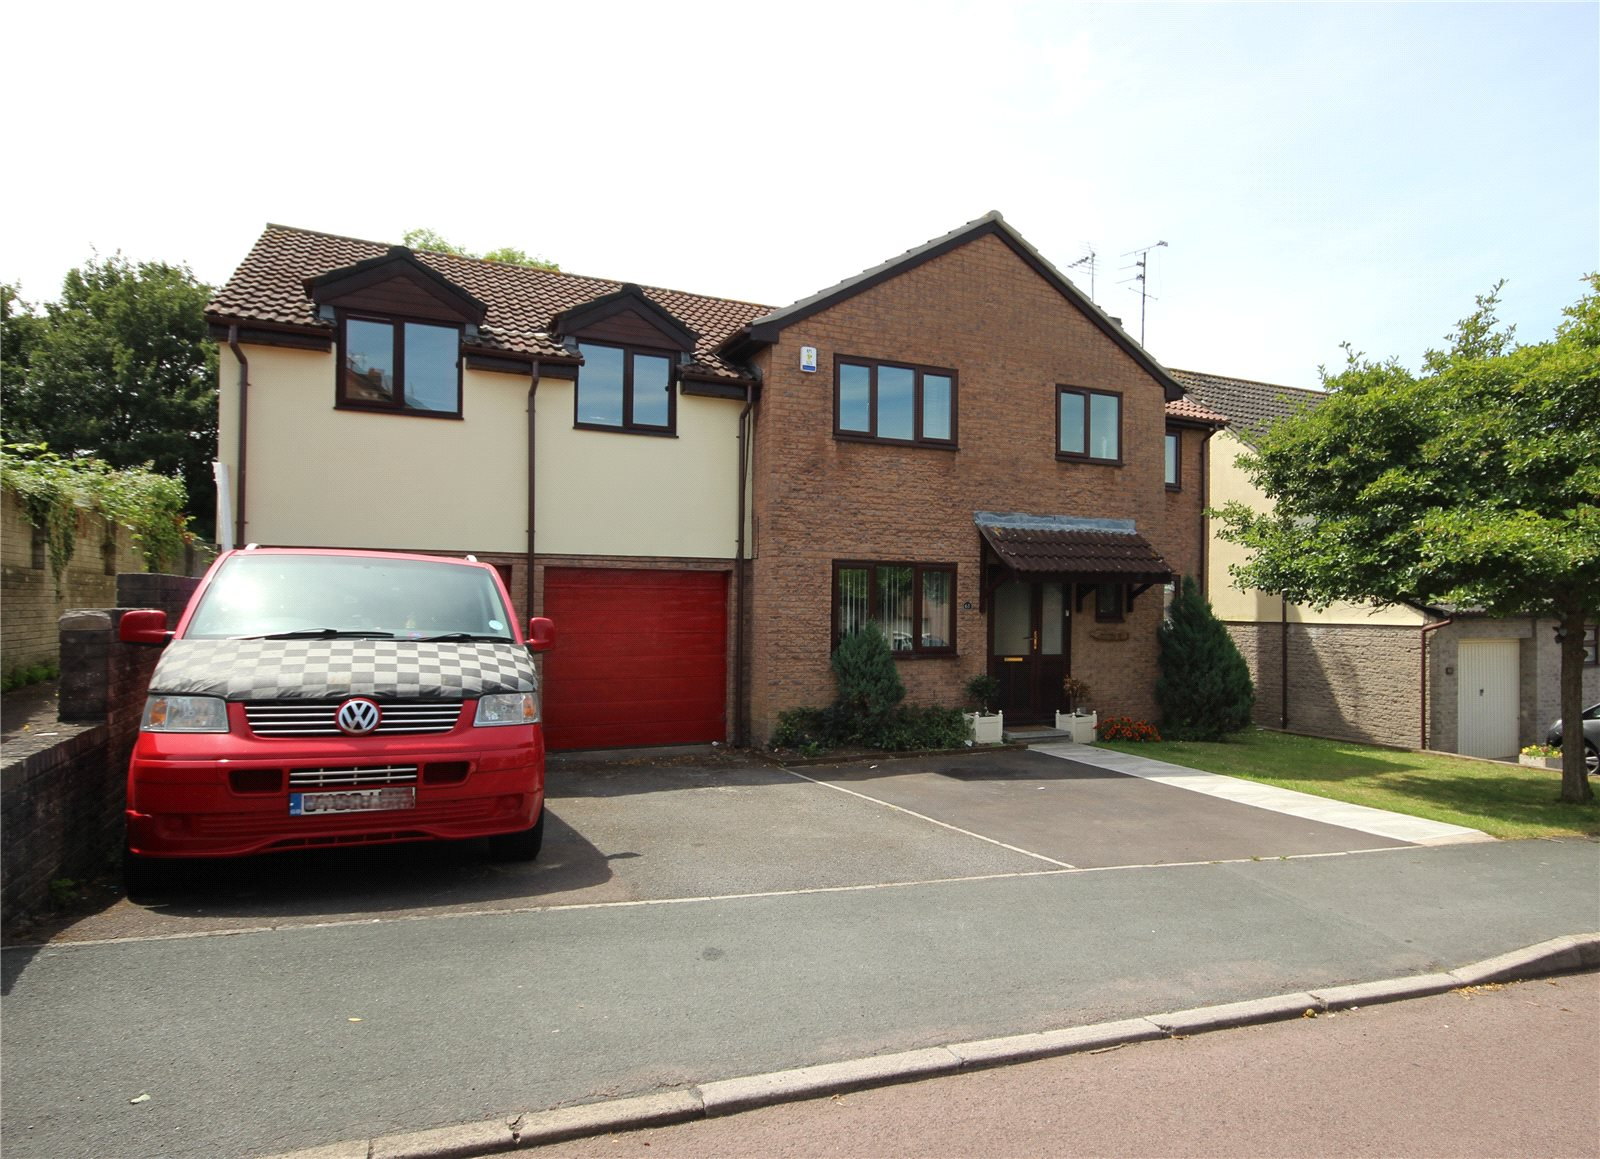 6 Bedrooms Detached House for sale in Oxbarton Stoke Gifford Bristol BS34